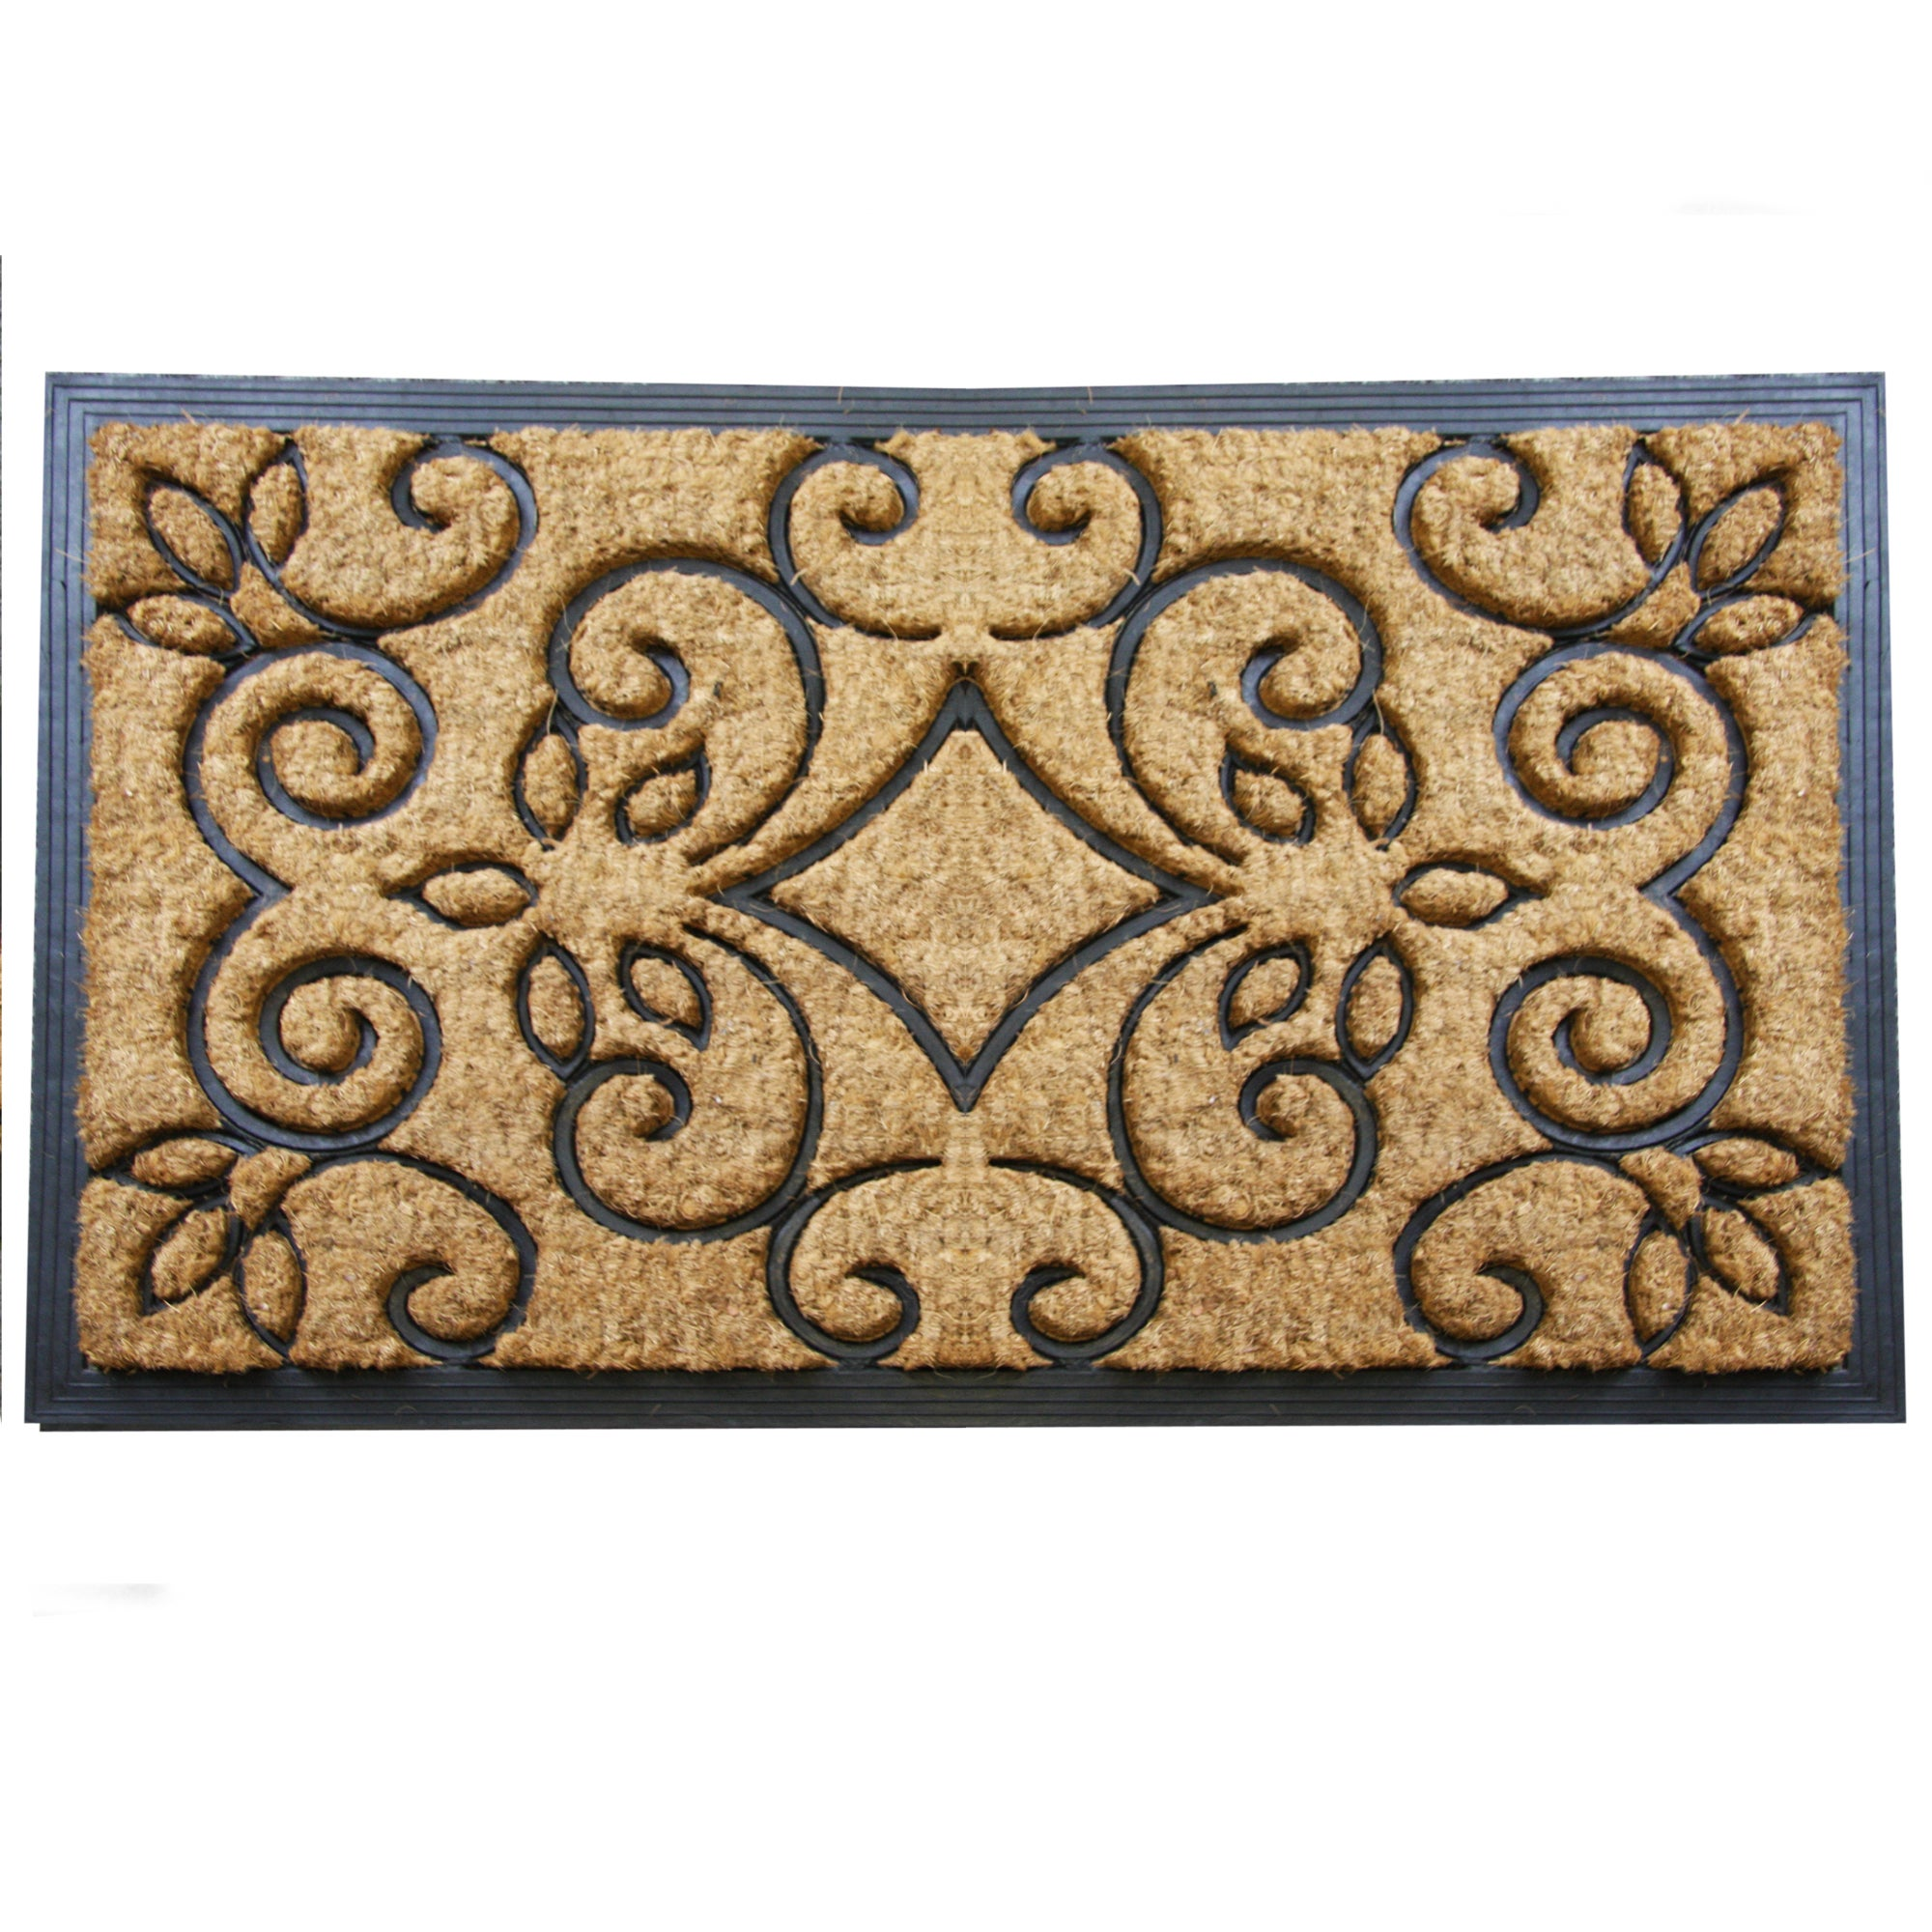 Jumbo Scroll Rubber and Coir Doormat